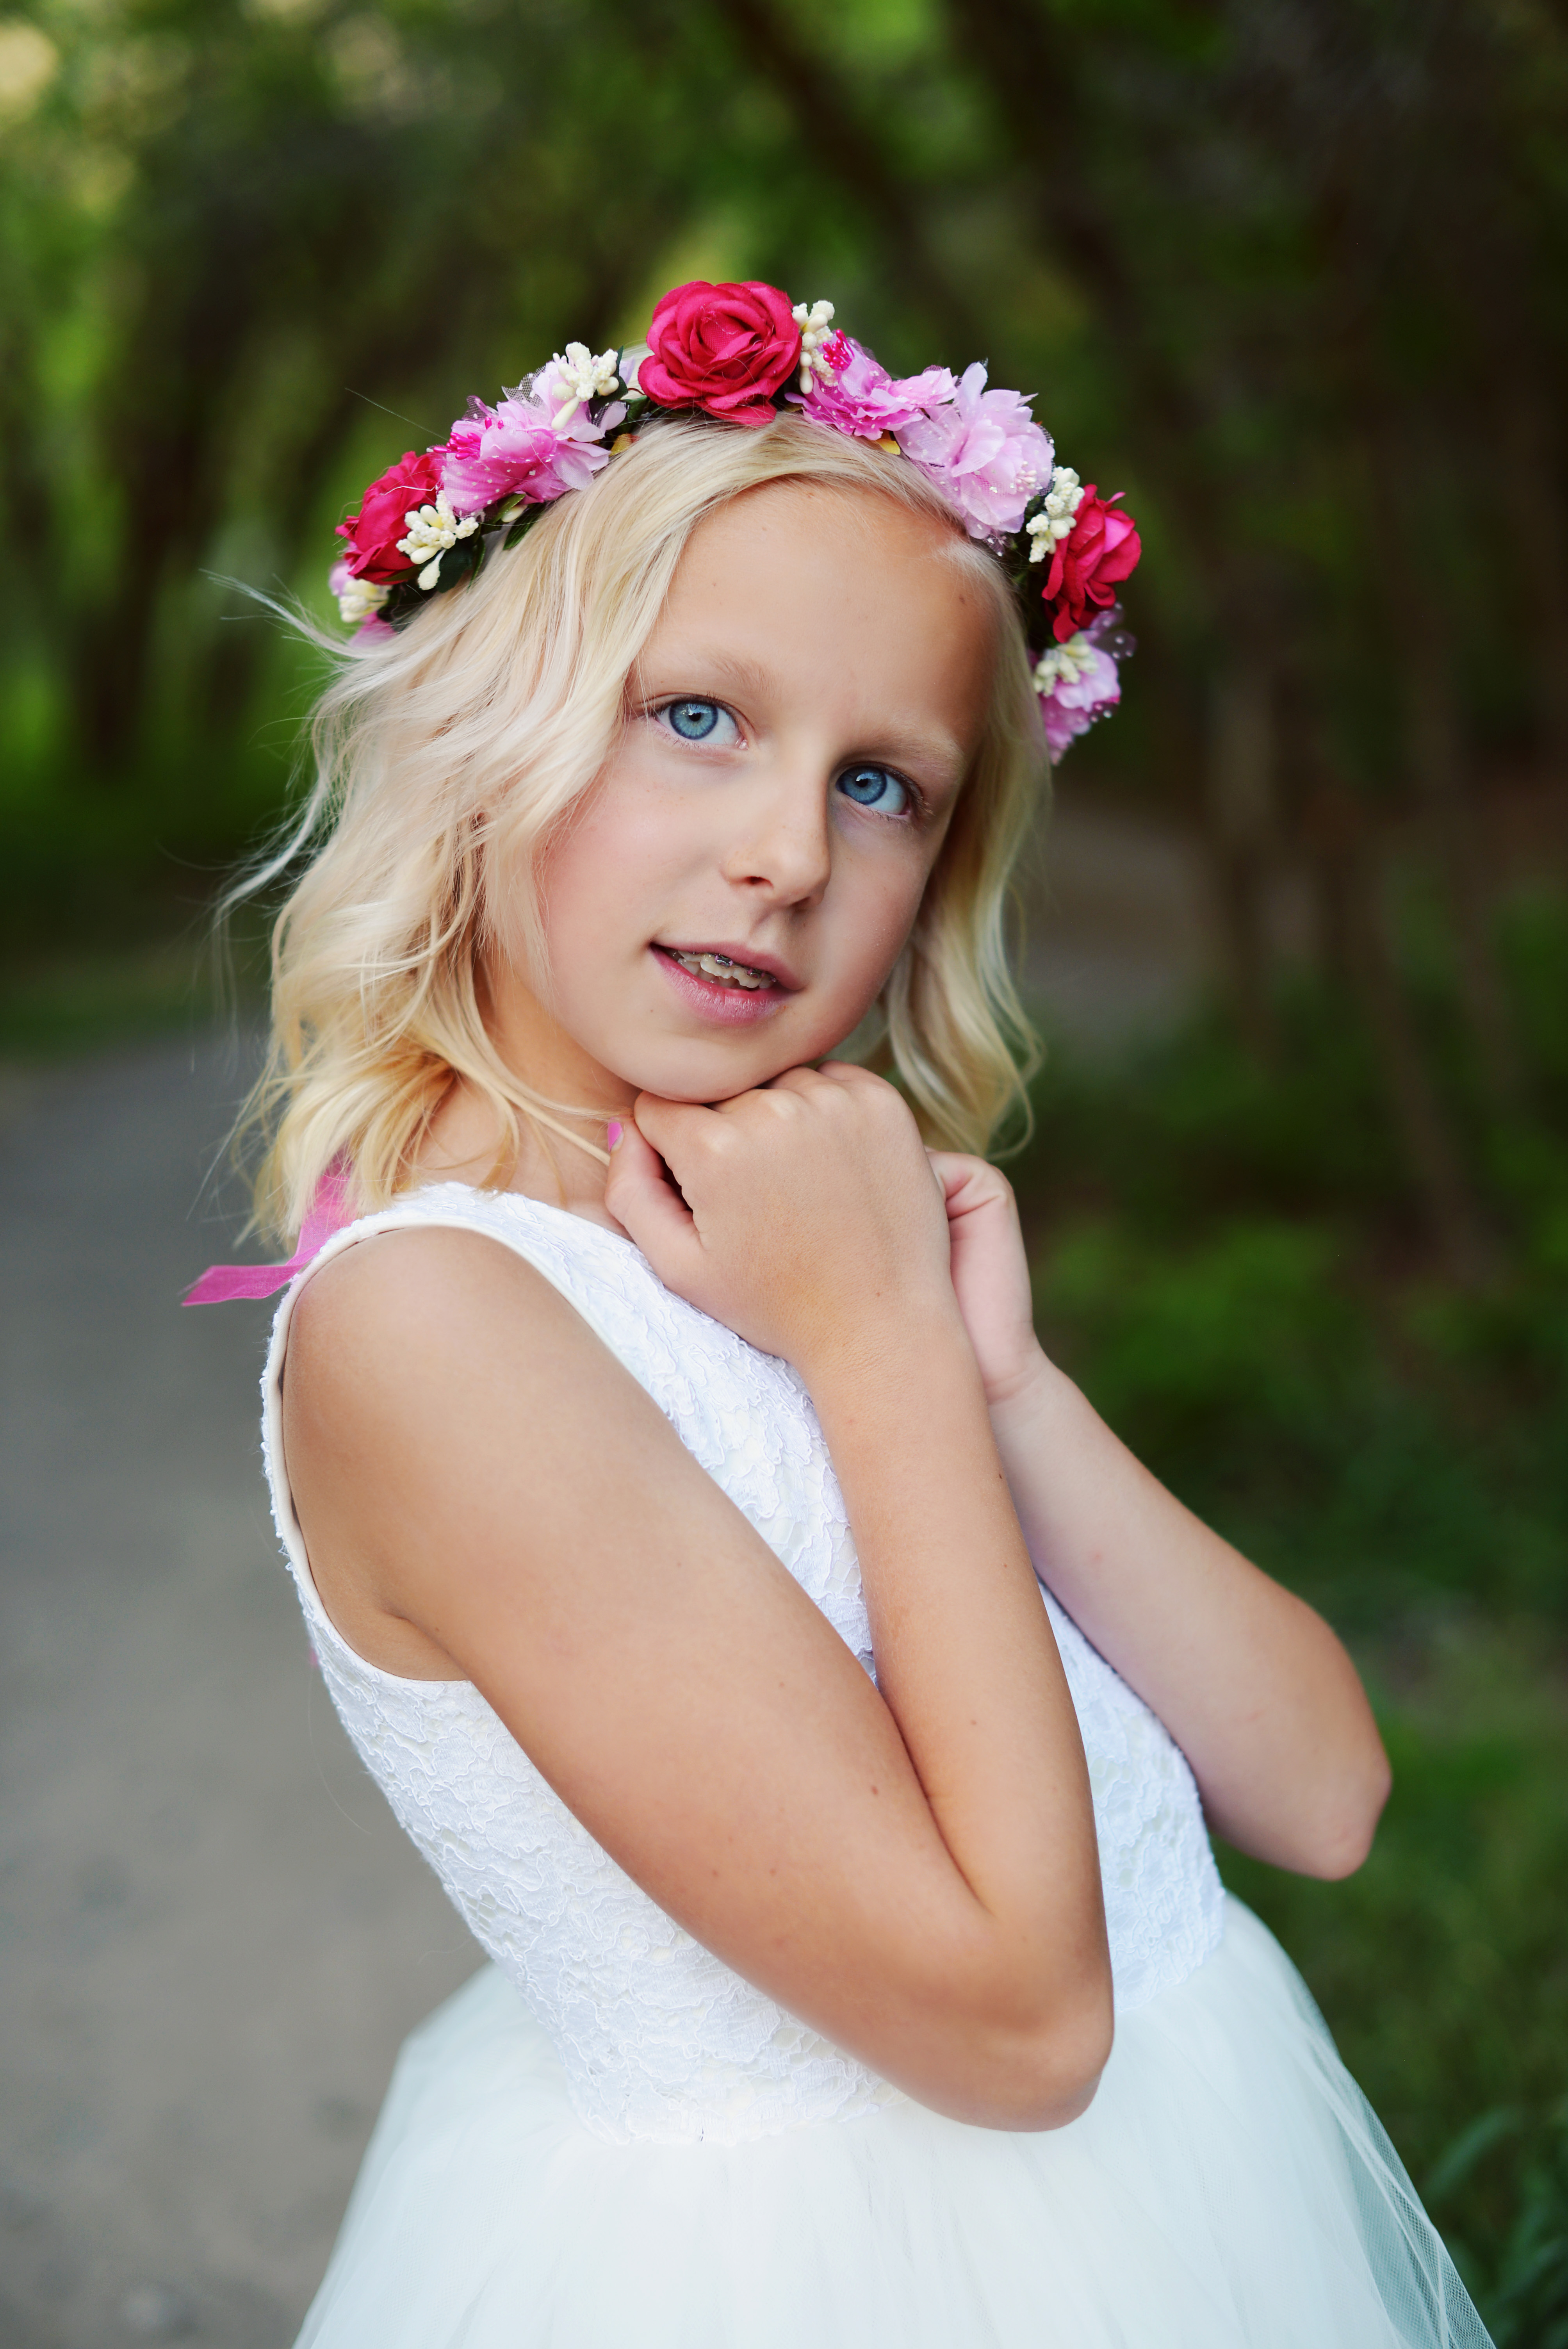 See Our Range Of Flower Girl Hair Accessories To Match The Gilly